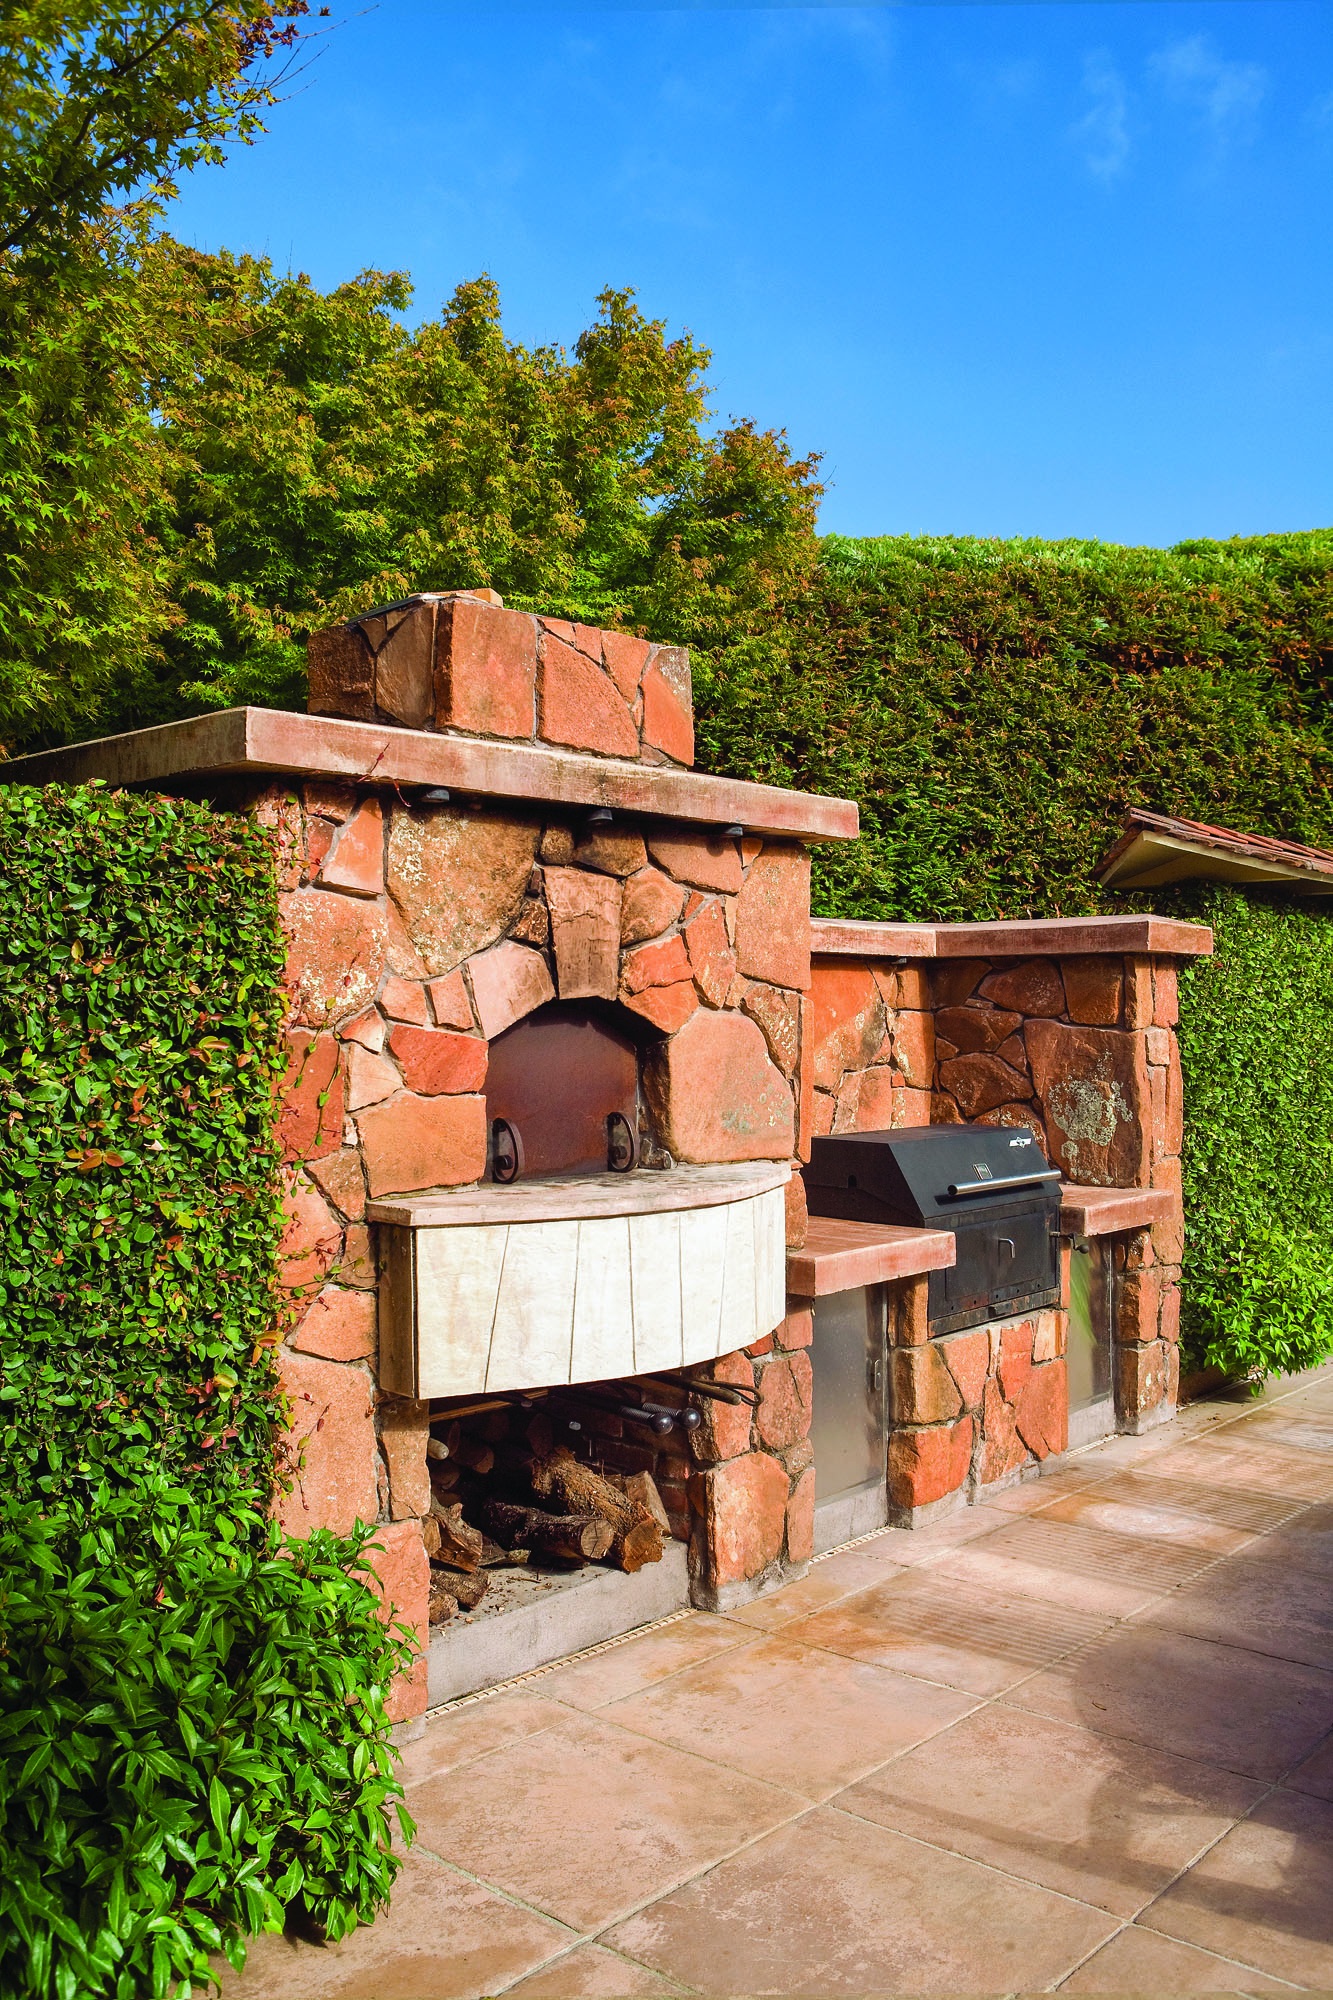 A pizza oven and grill sit side by side in this stone structure.